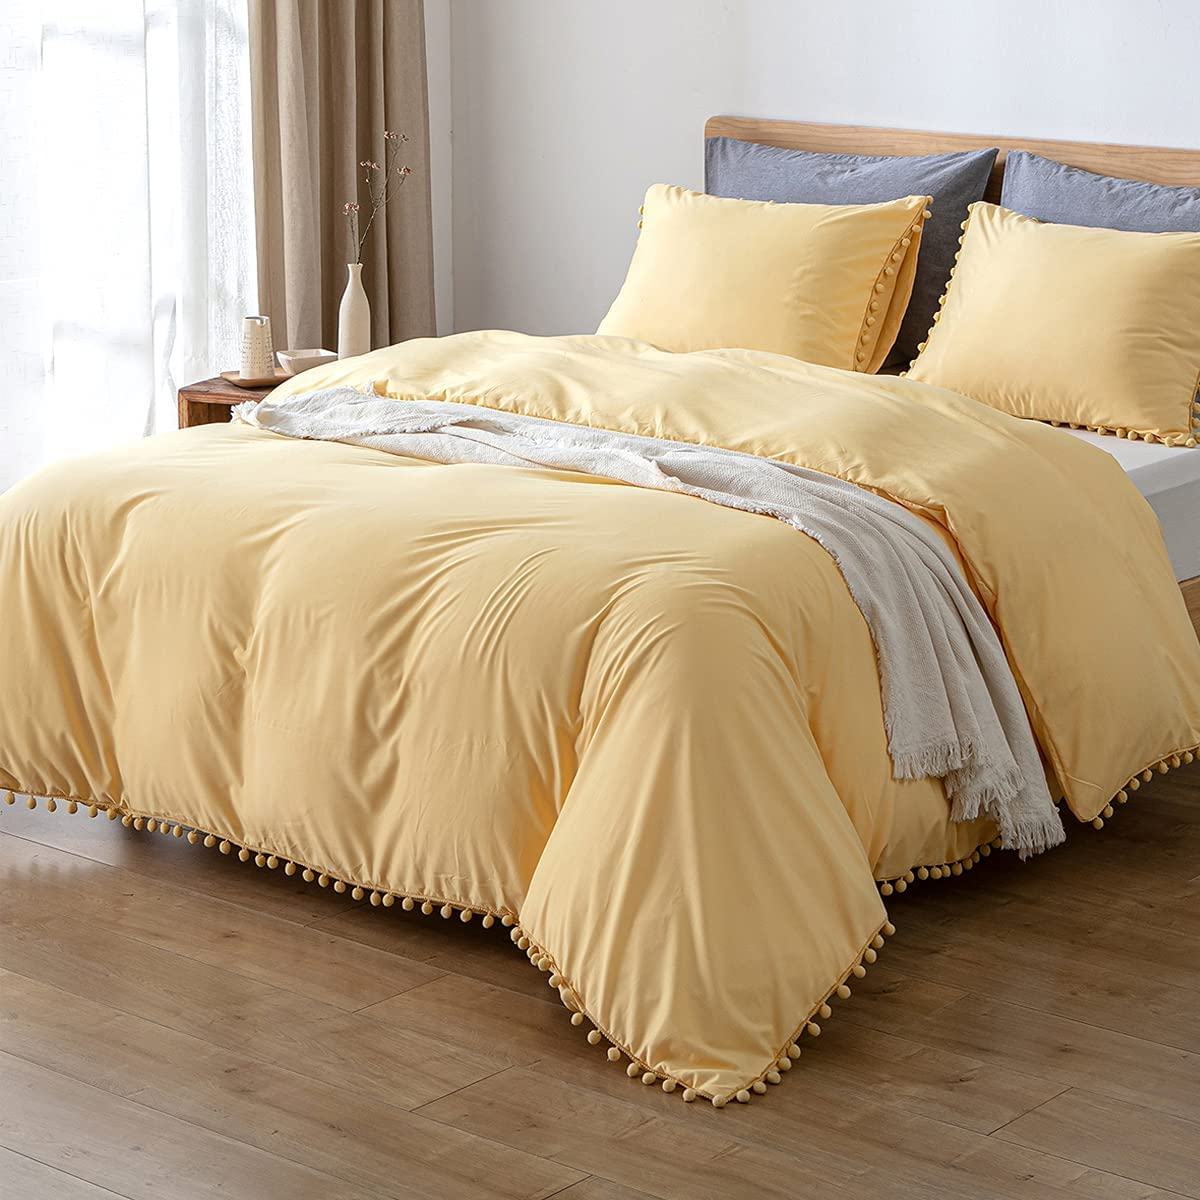 MWL Animer and price revision Toy Pom Fringe Duvet Cover 1 Yello Size trend rank Pieces 3 Queen